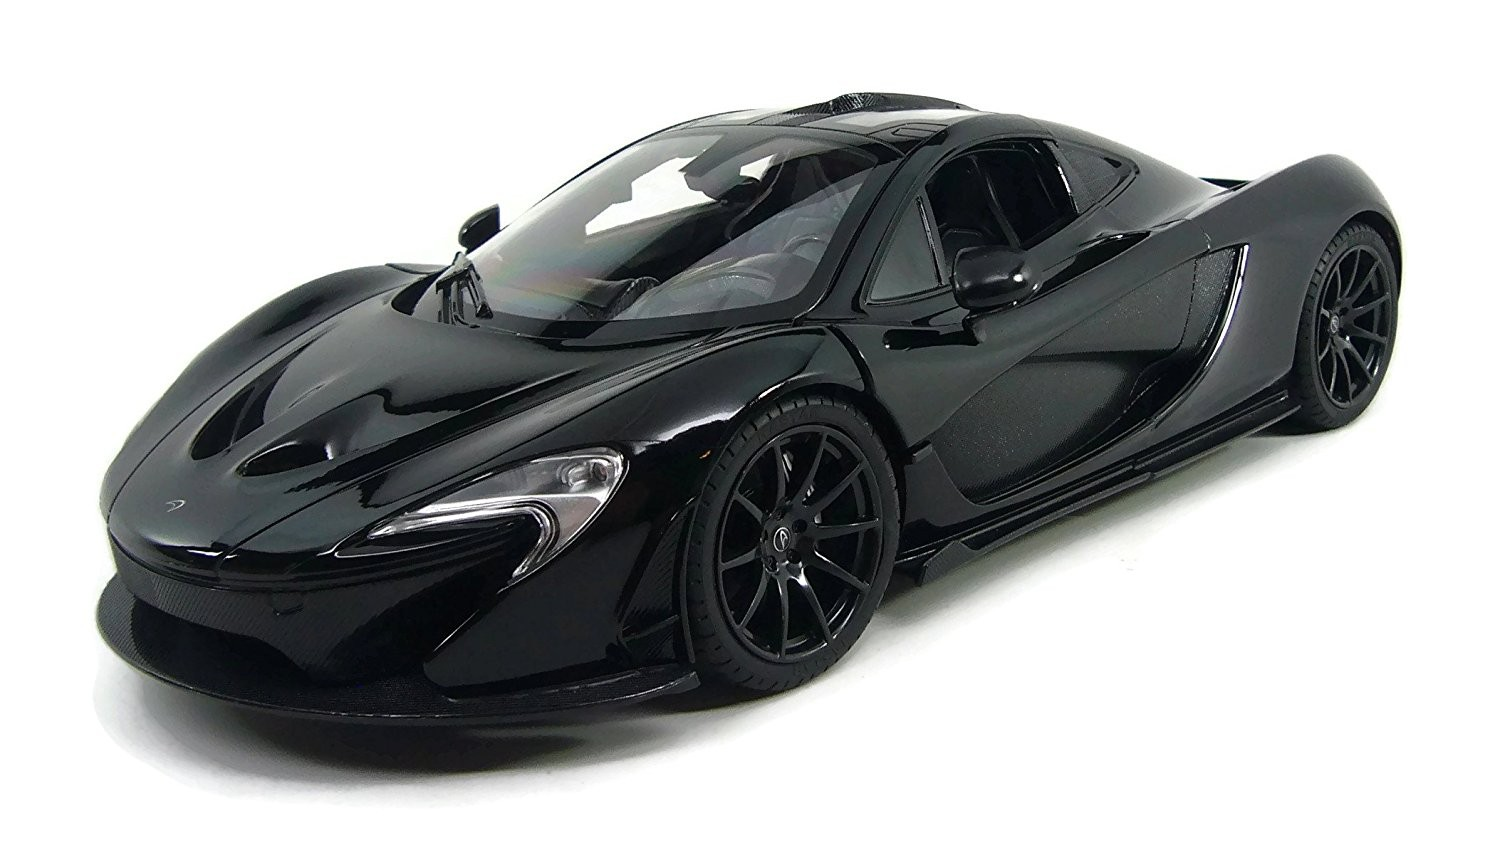 1:14 RC McLaren P1 Sports Car With Lights and Open Doors (Black)